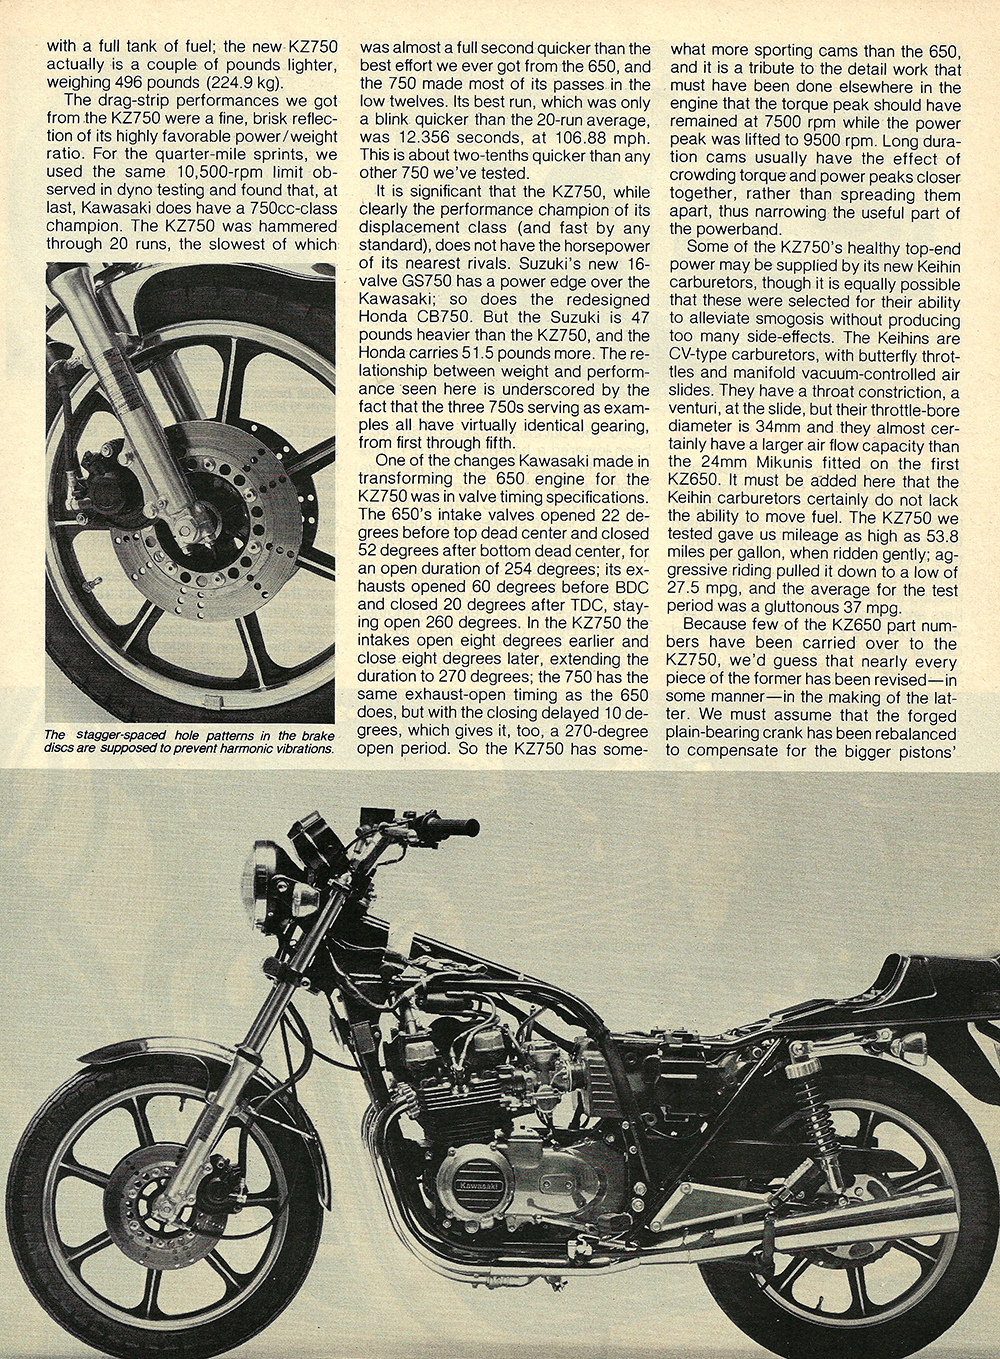 1980 Kawasaki KZ750 road test 04.jpg